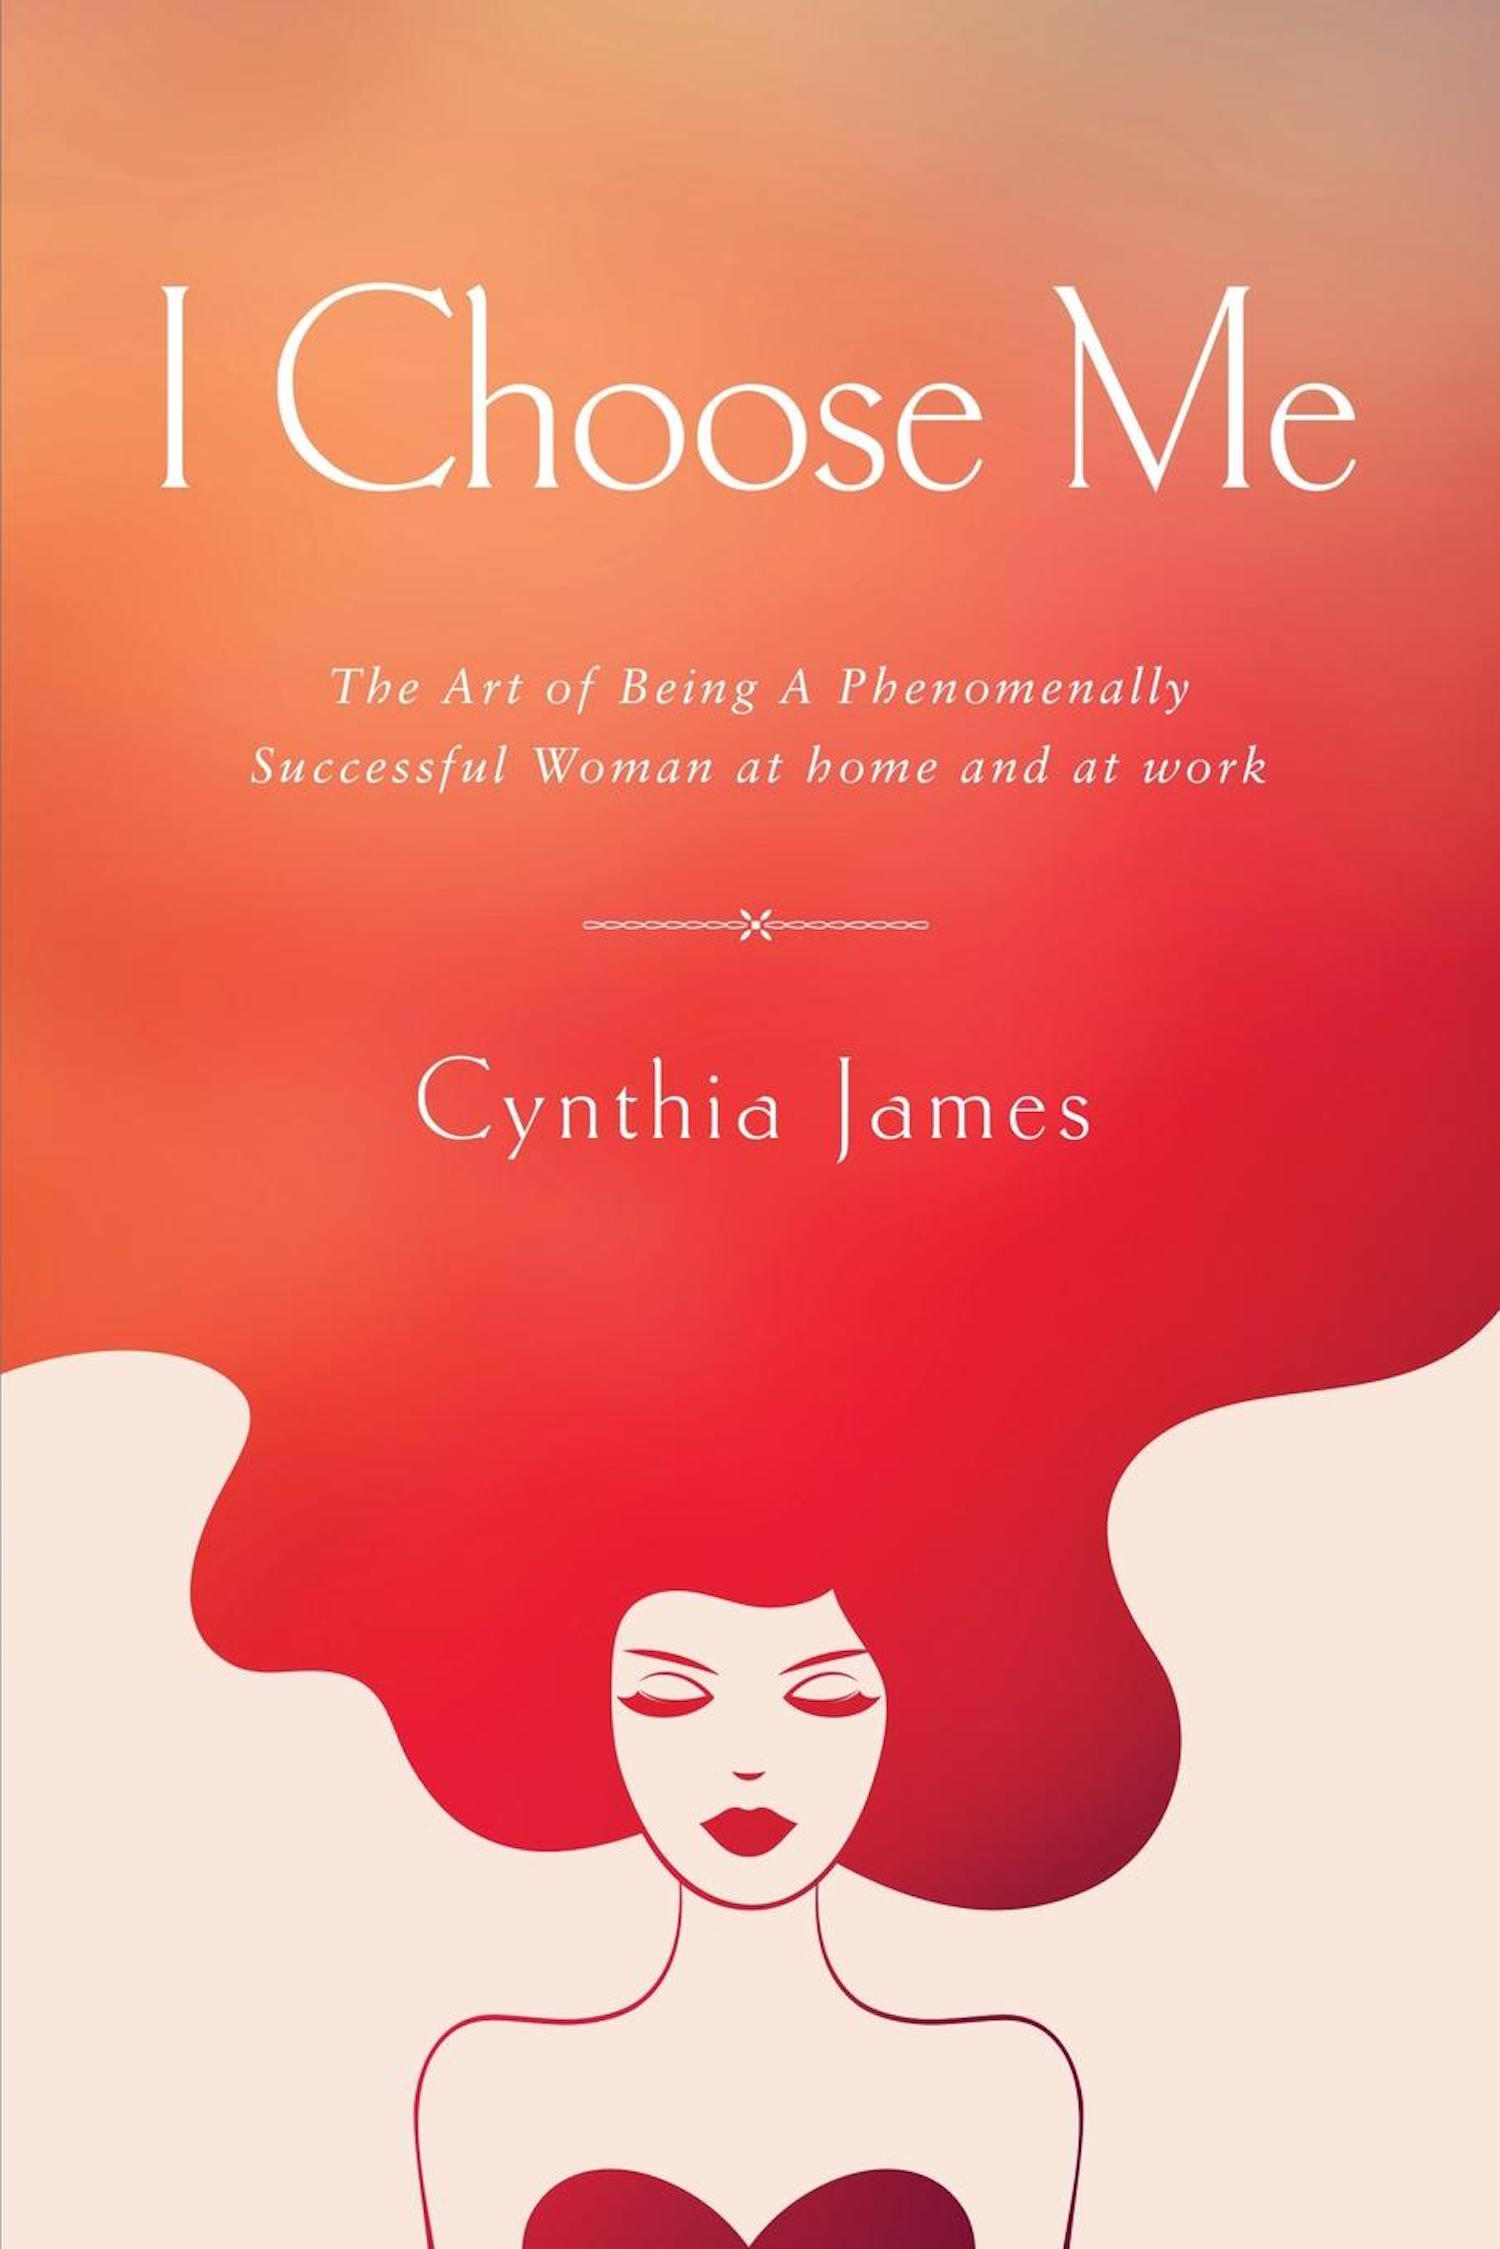 I Choose Me: The Art of Being a Phenomenally Successful Woman at Home and at Work